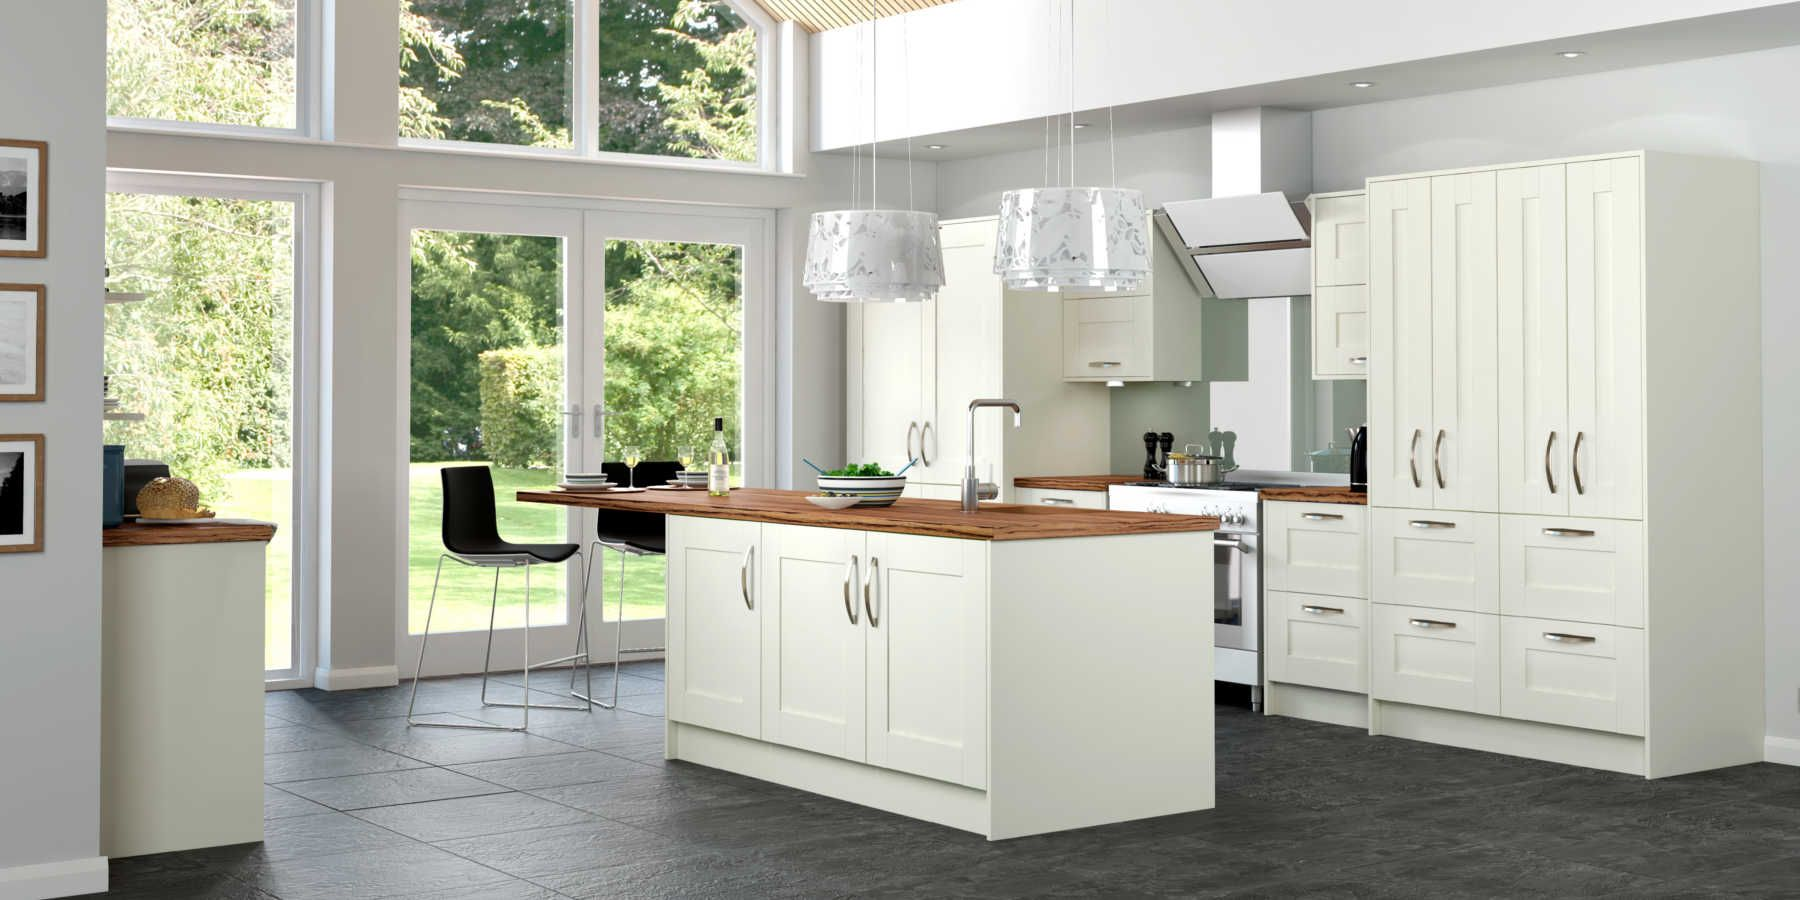 Symphony Group – Experts in fitted kitchens, bedrooms and